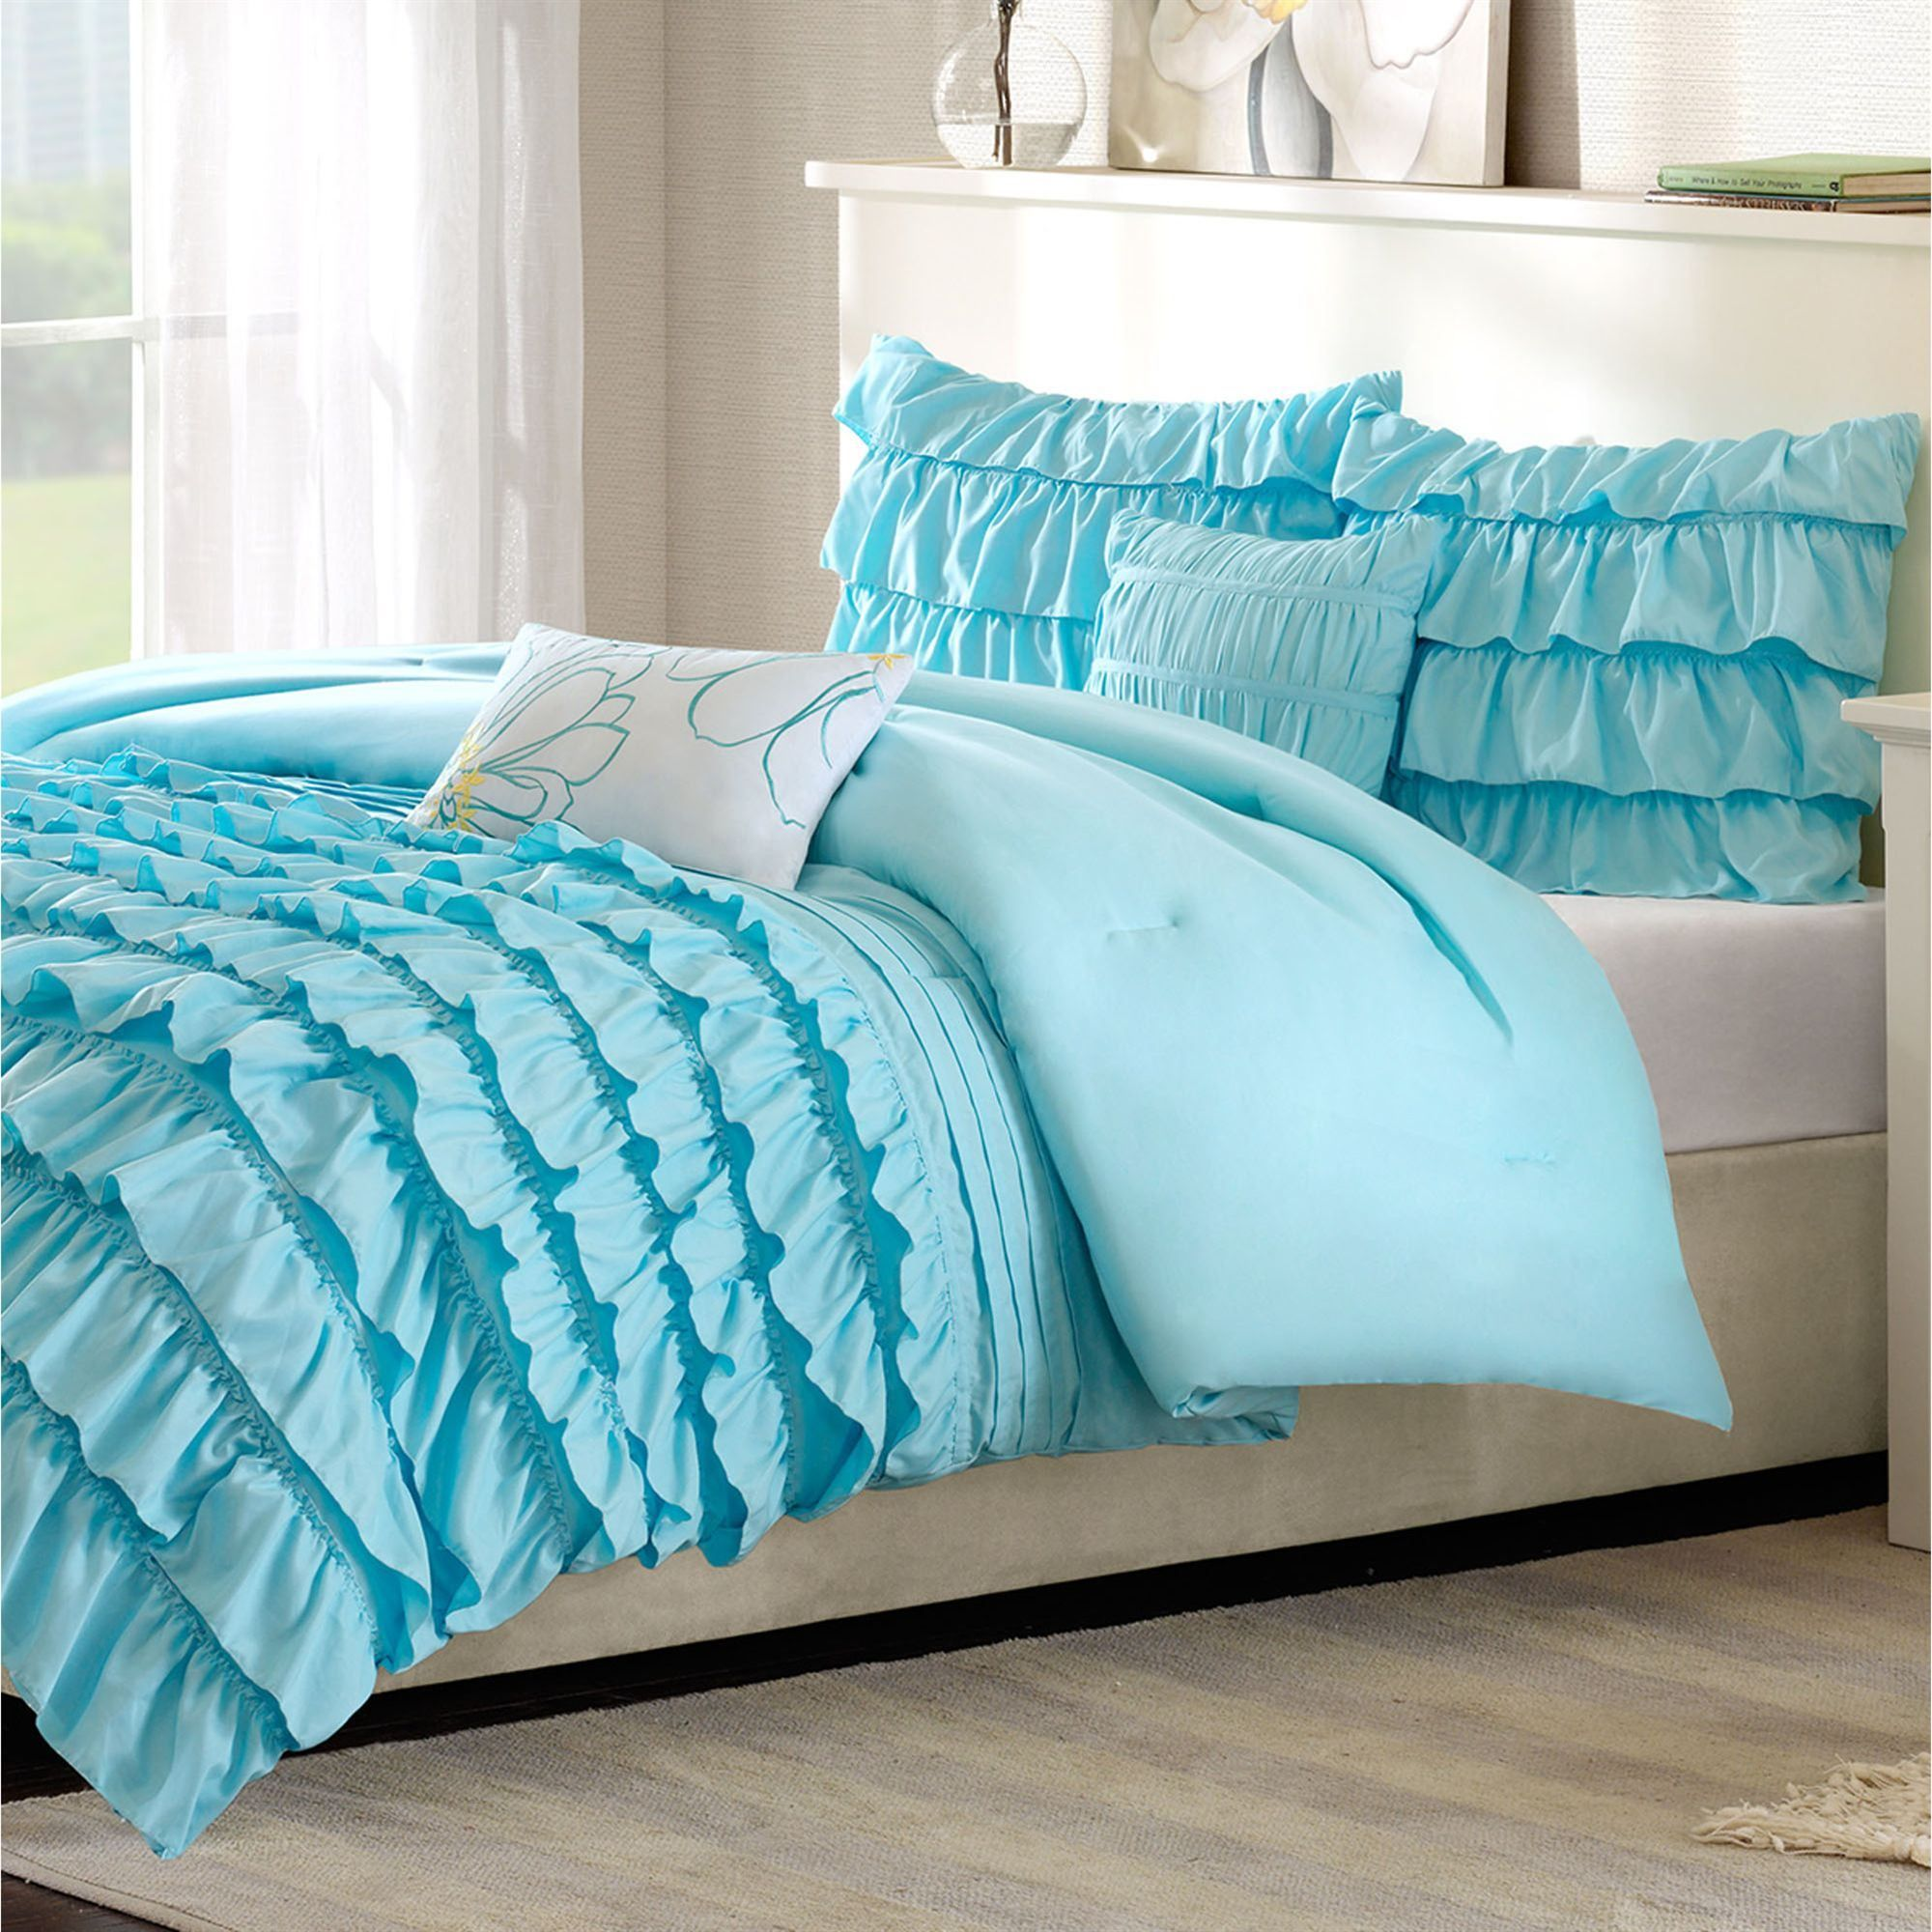 Kacie Light Blue Ruffled Comforter Bed Set Pokryvalo